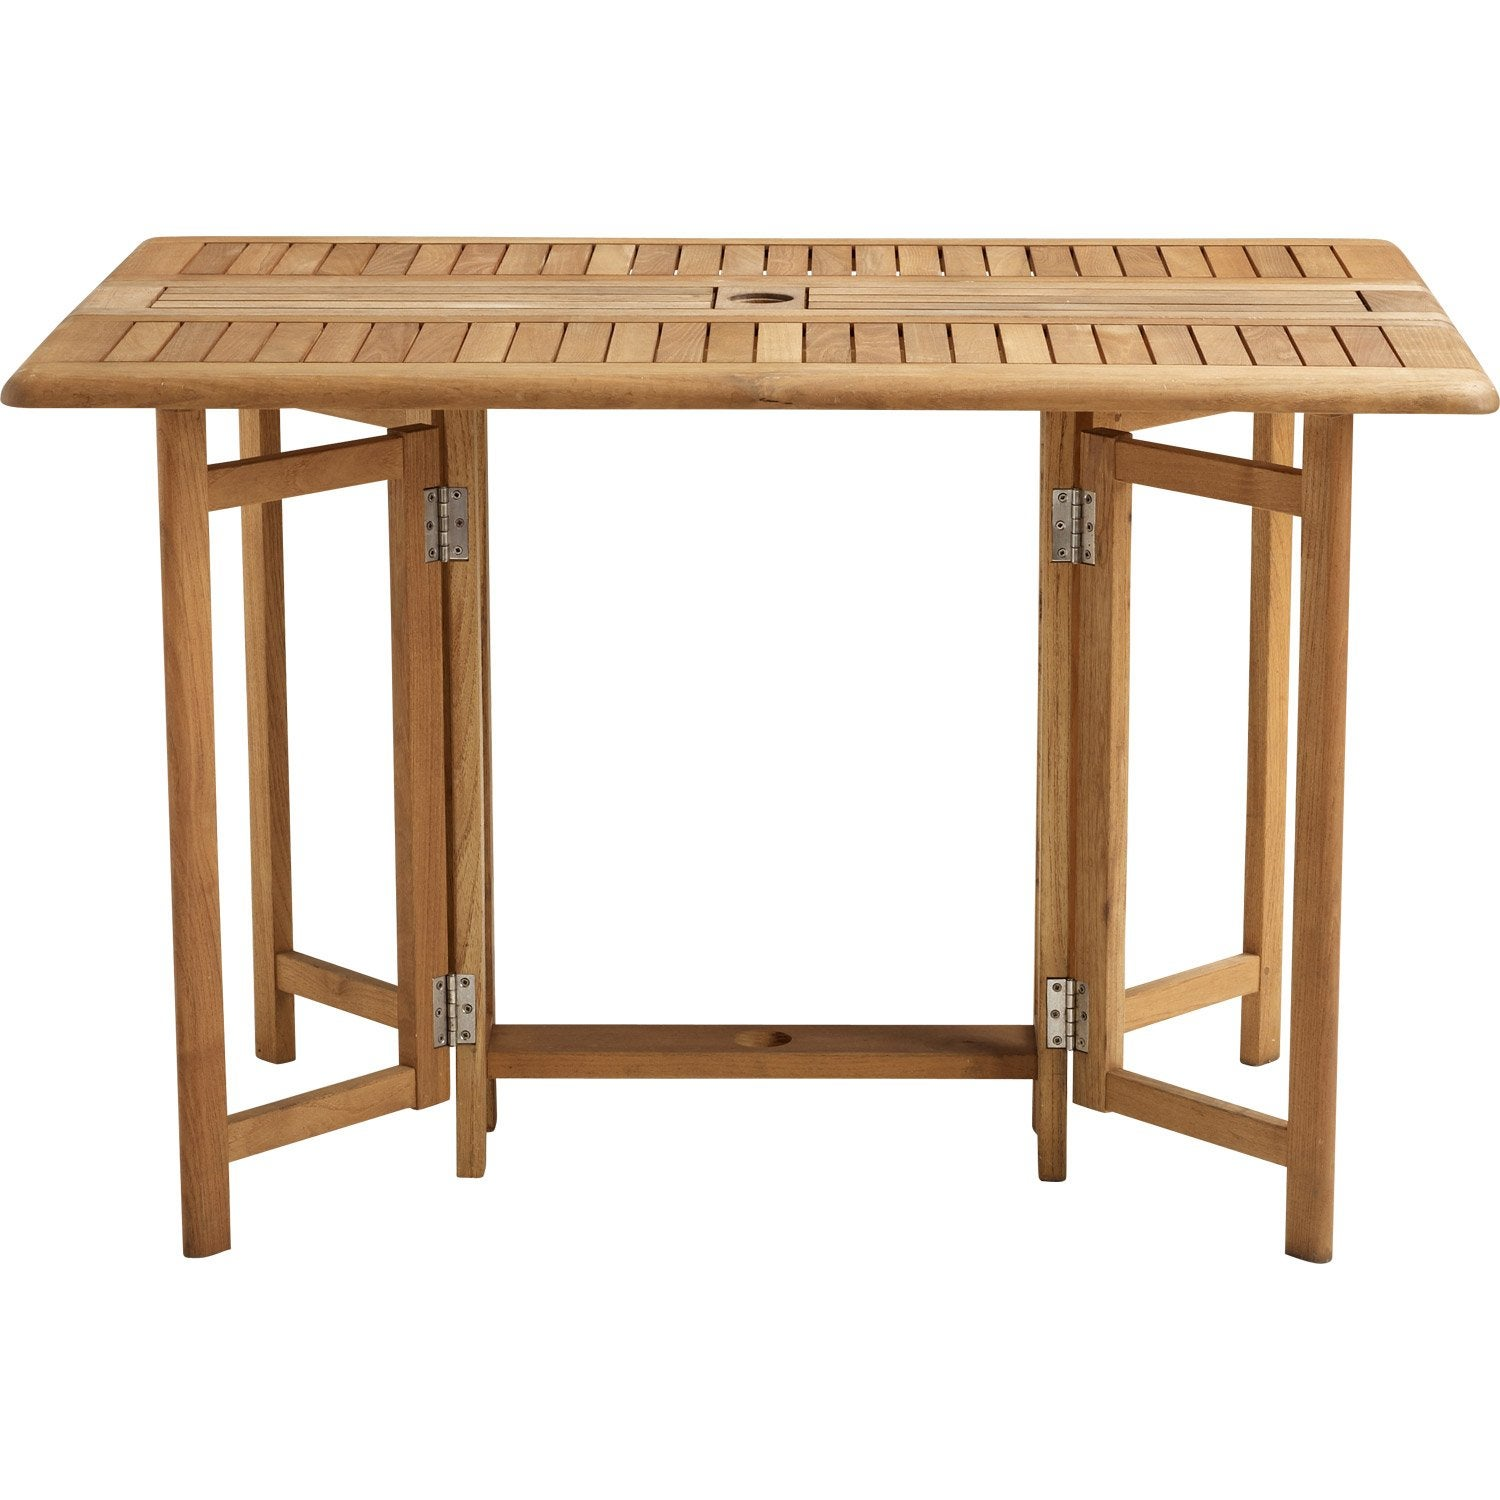 Table de jardin pliante leroy merlin maison design for Table de nuit leroy merlin